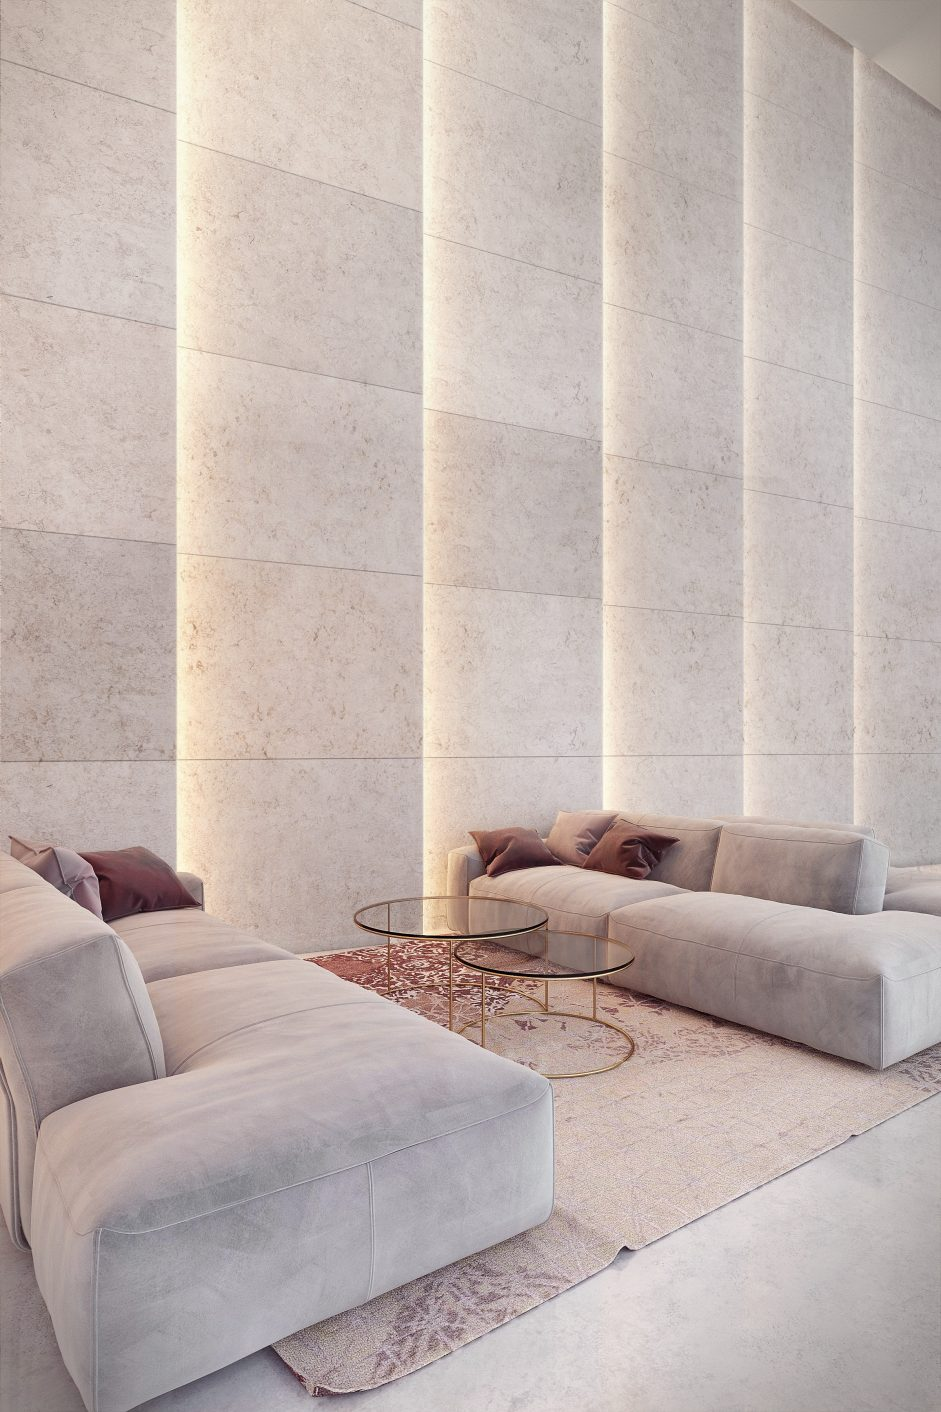 Visualization of elegant commercial interior in bright and beige colors, with stone wall with modern light design